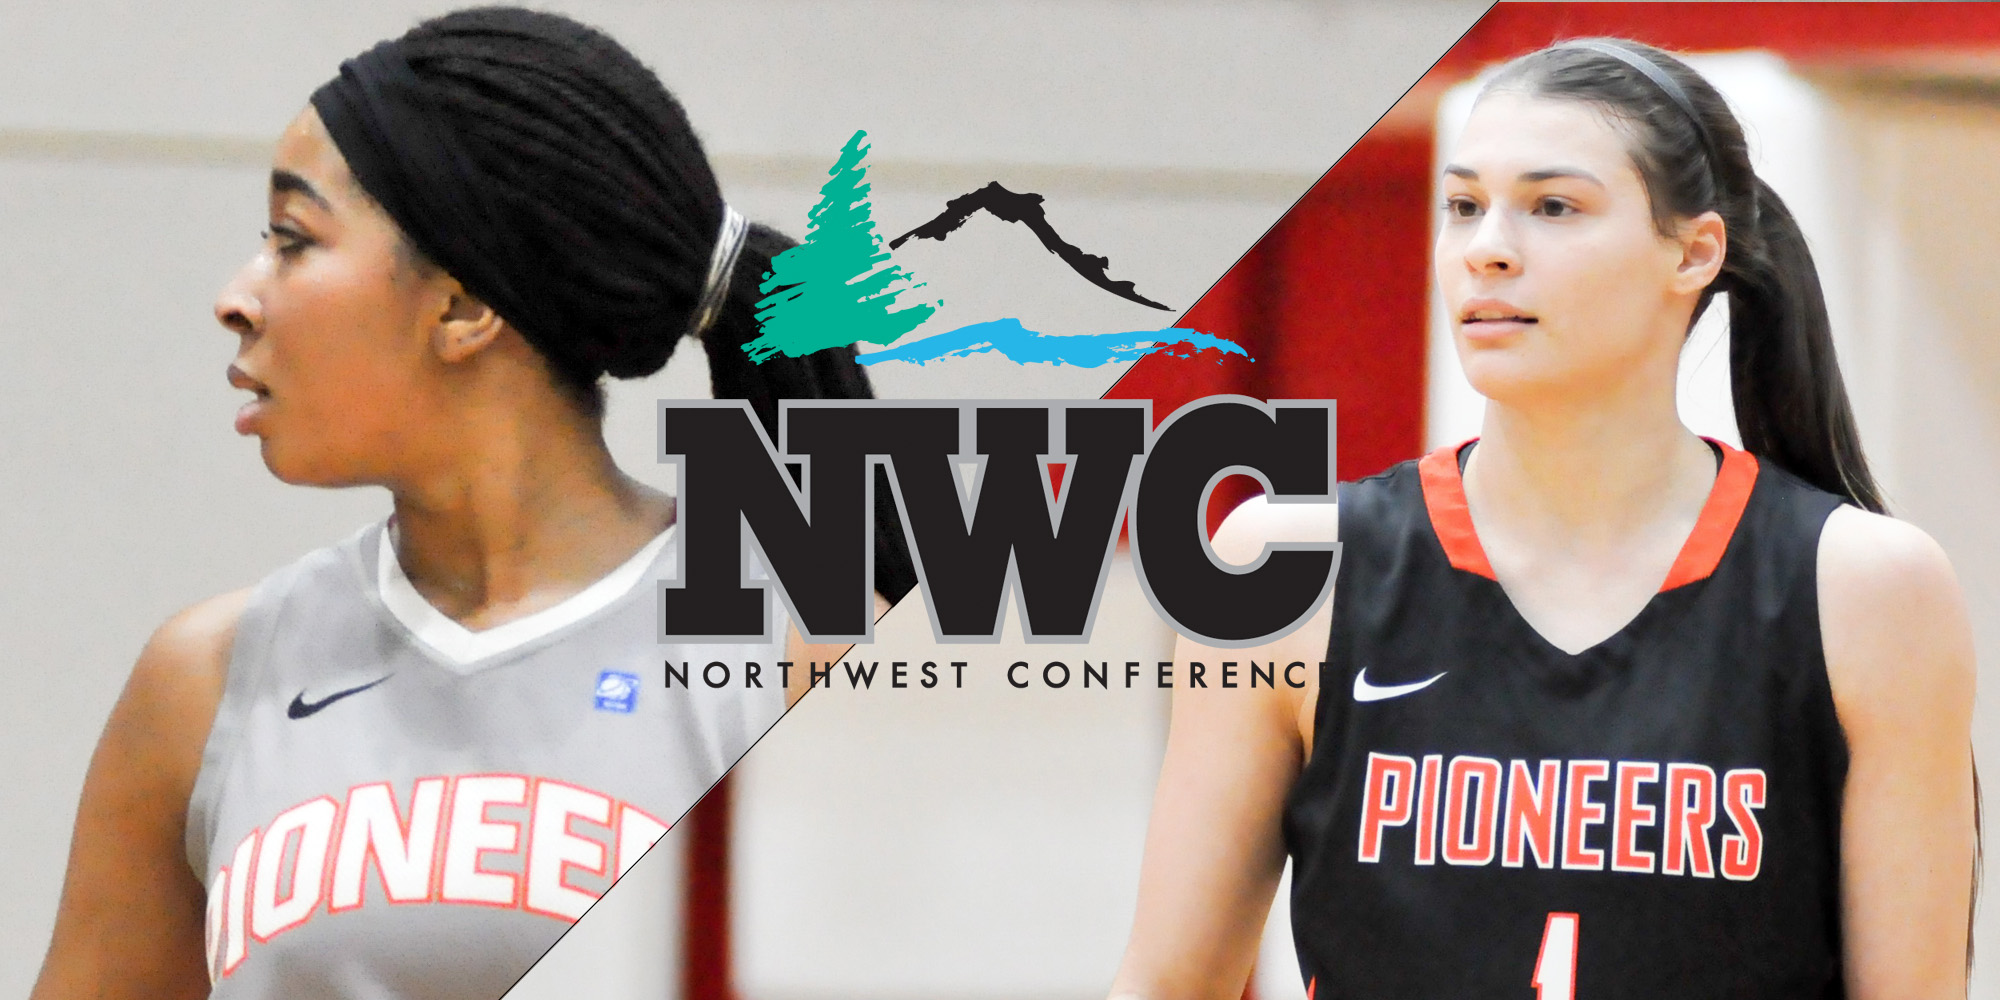 Blog: Afolabi, Leith named to All-Northwest Conference teams